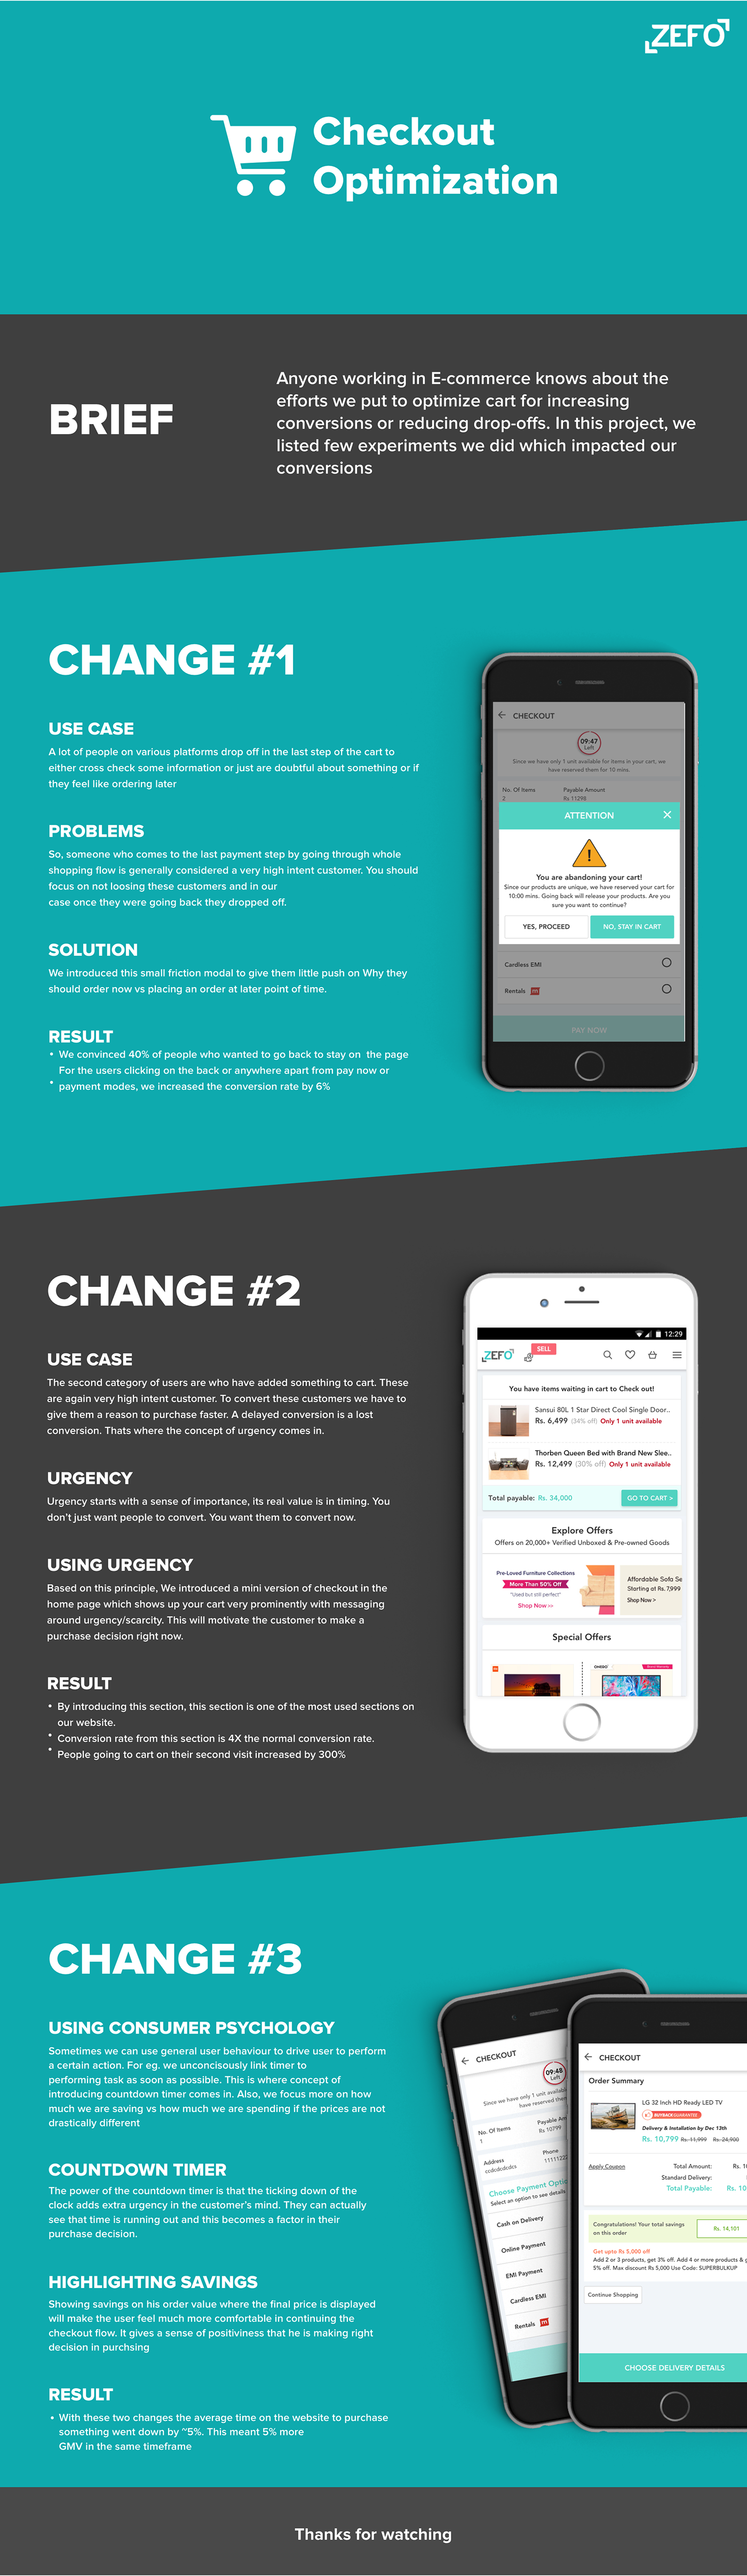 cart check out Ecommerce conversions UI/UX redesign Changes Product Page Shopping payment